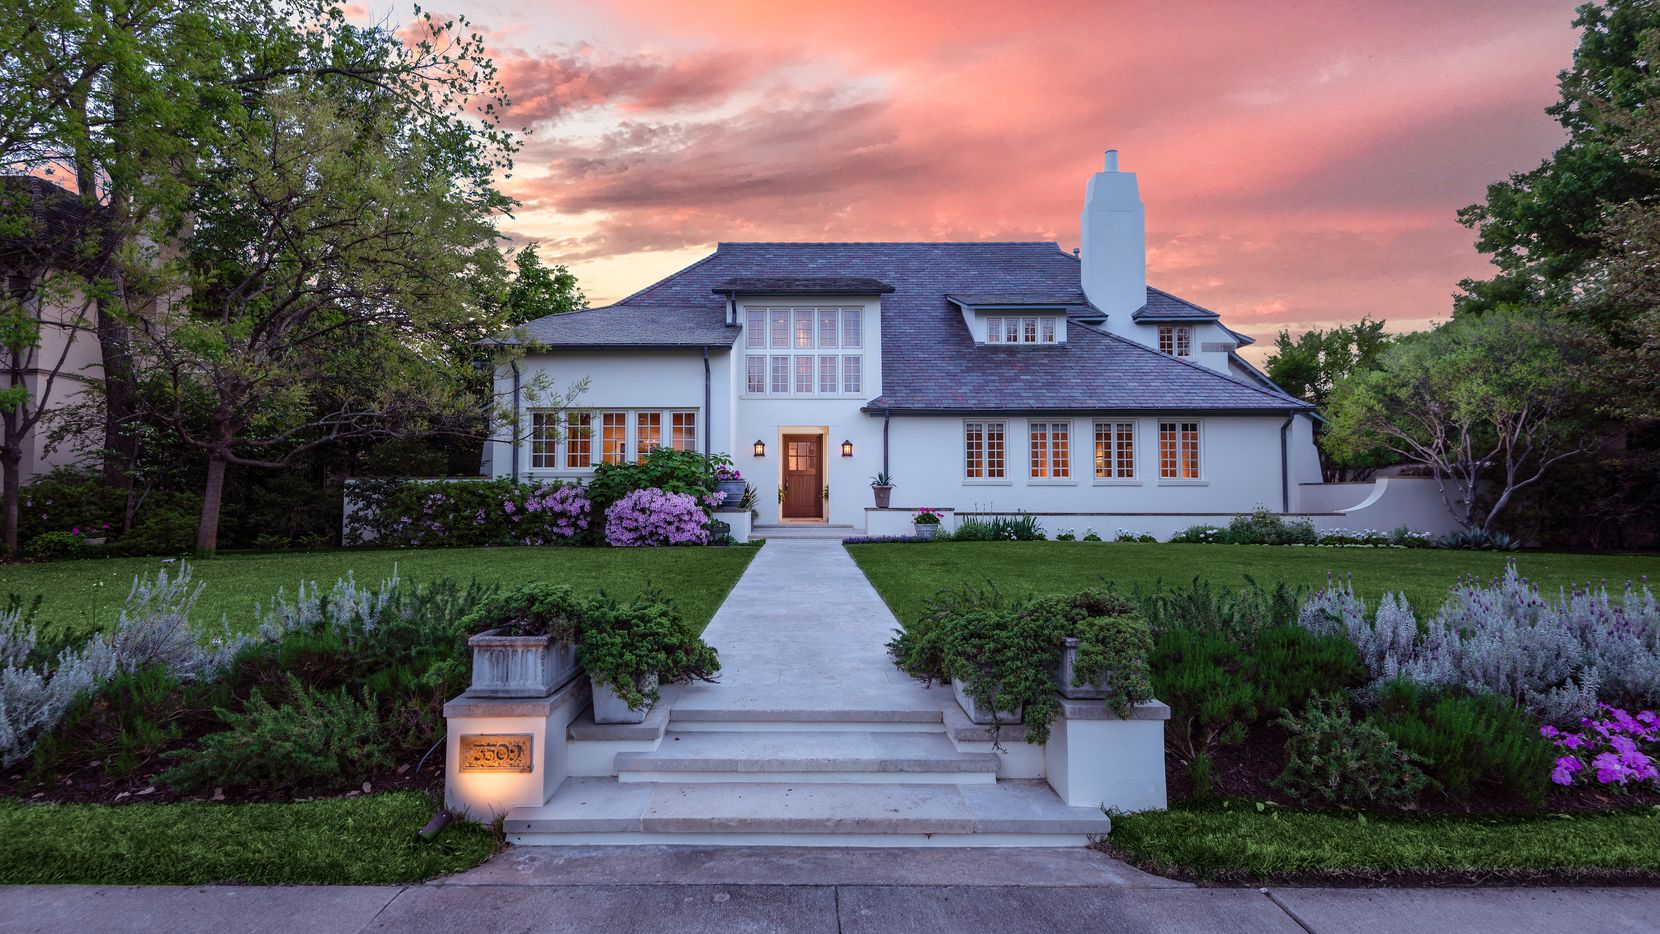 The Highland Park house was built in 2001 and designed by architect Scott Merrill.